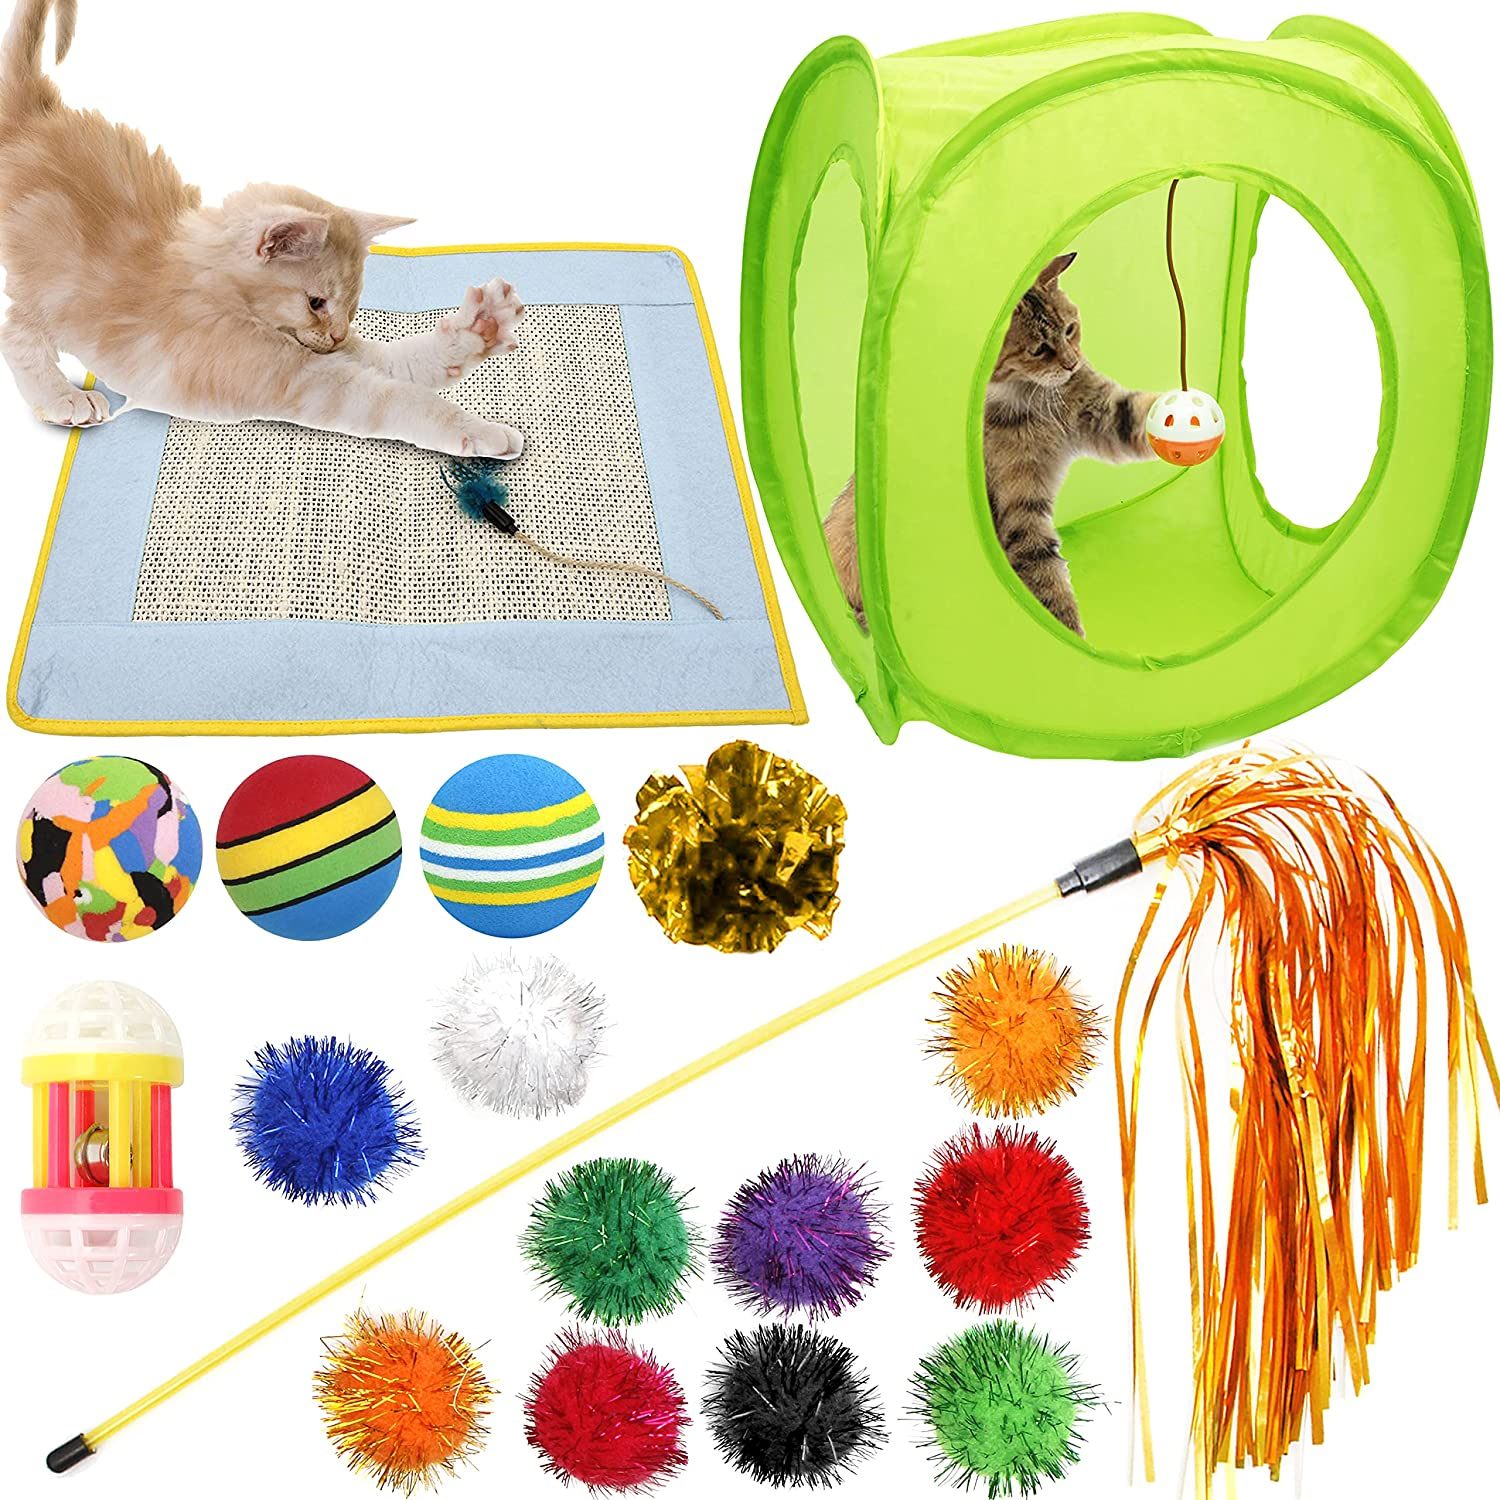 low-pricing Youngever 18 Cat Brand new Toys Kitten S Scratching Assortments Mat